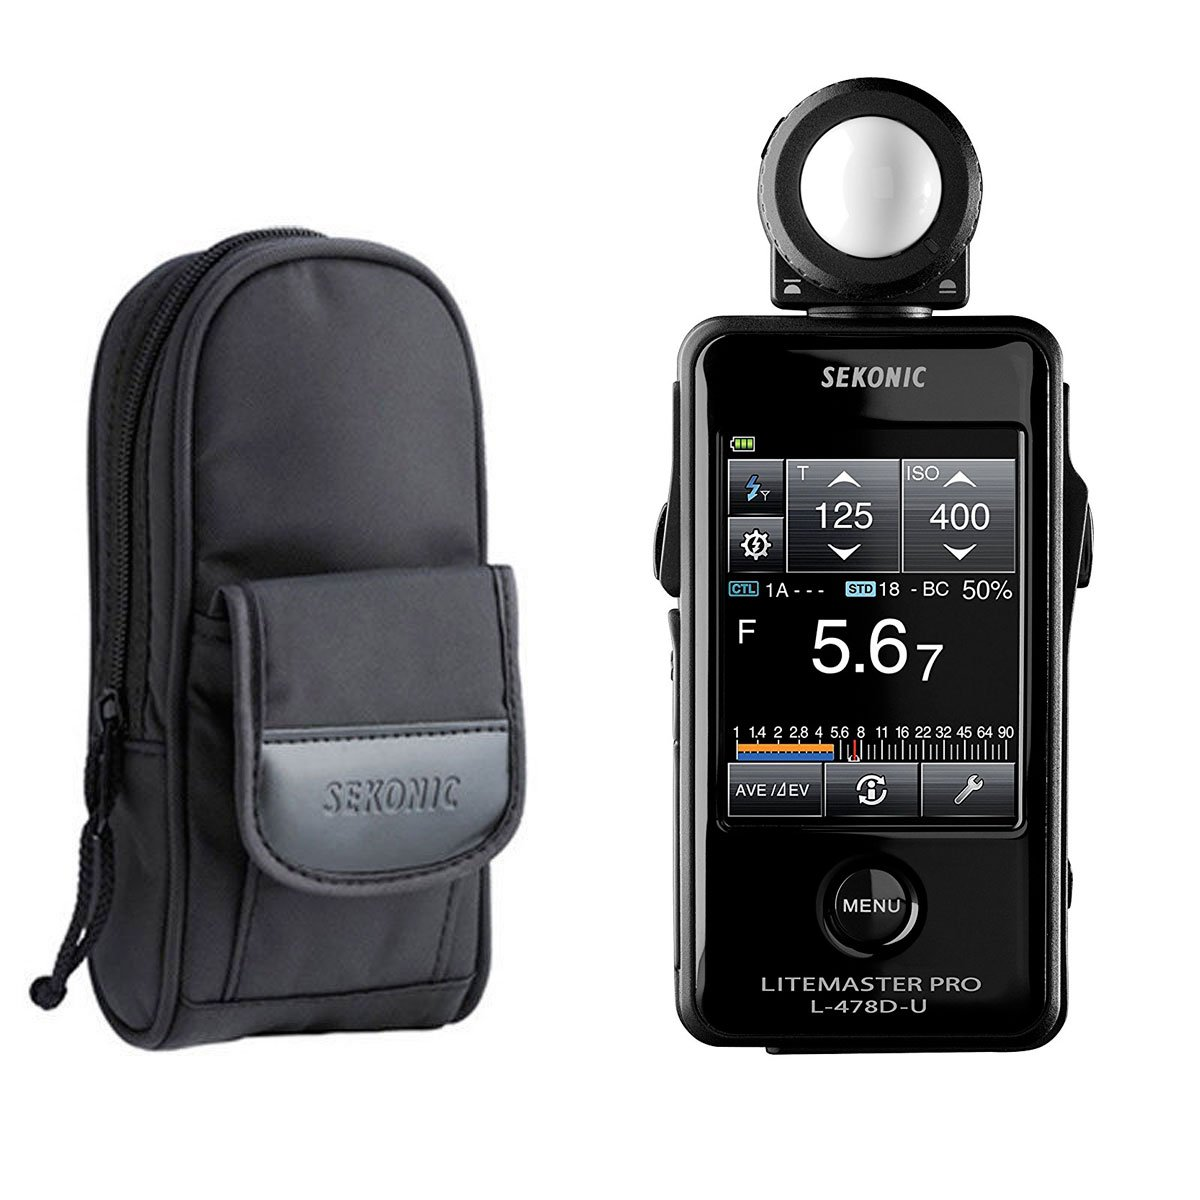 Sekonic LiteMaster Pro L-478D-U Light Meter With Exclusive 3-Year Warranty + Sekonic Deluxe Case for L-478-series meters by Sekonic